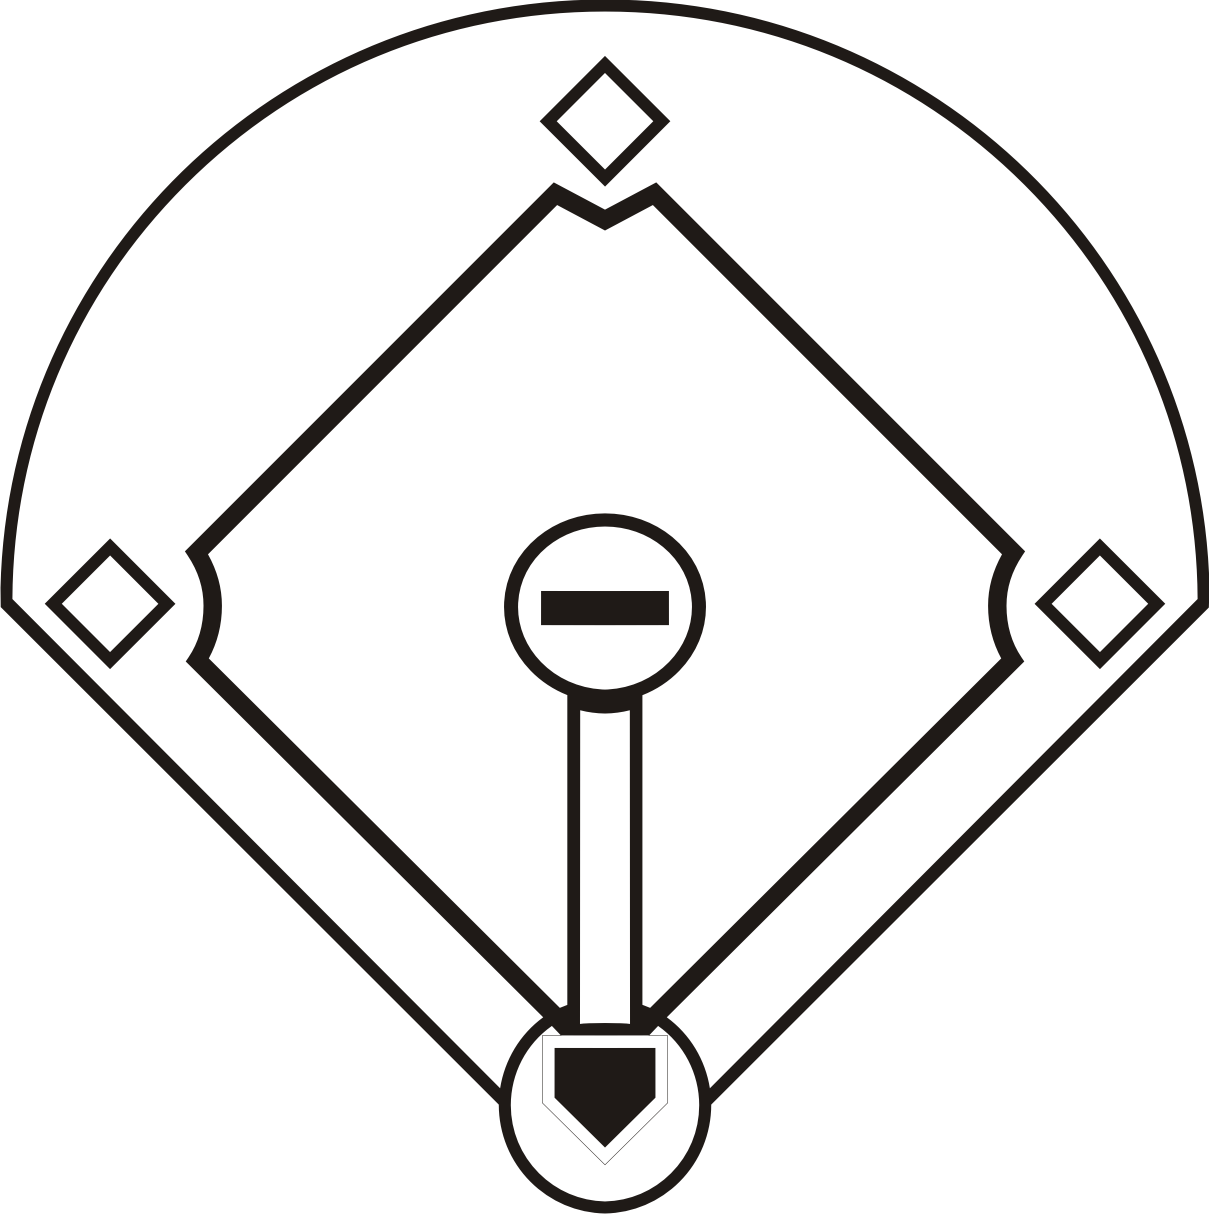 Baseball Diamond Coloring Pages - High Quality Coloring Pages ...